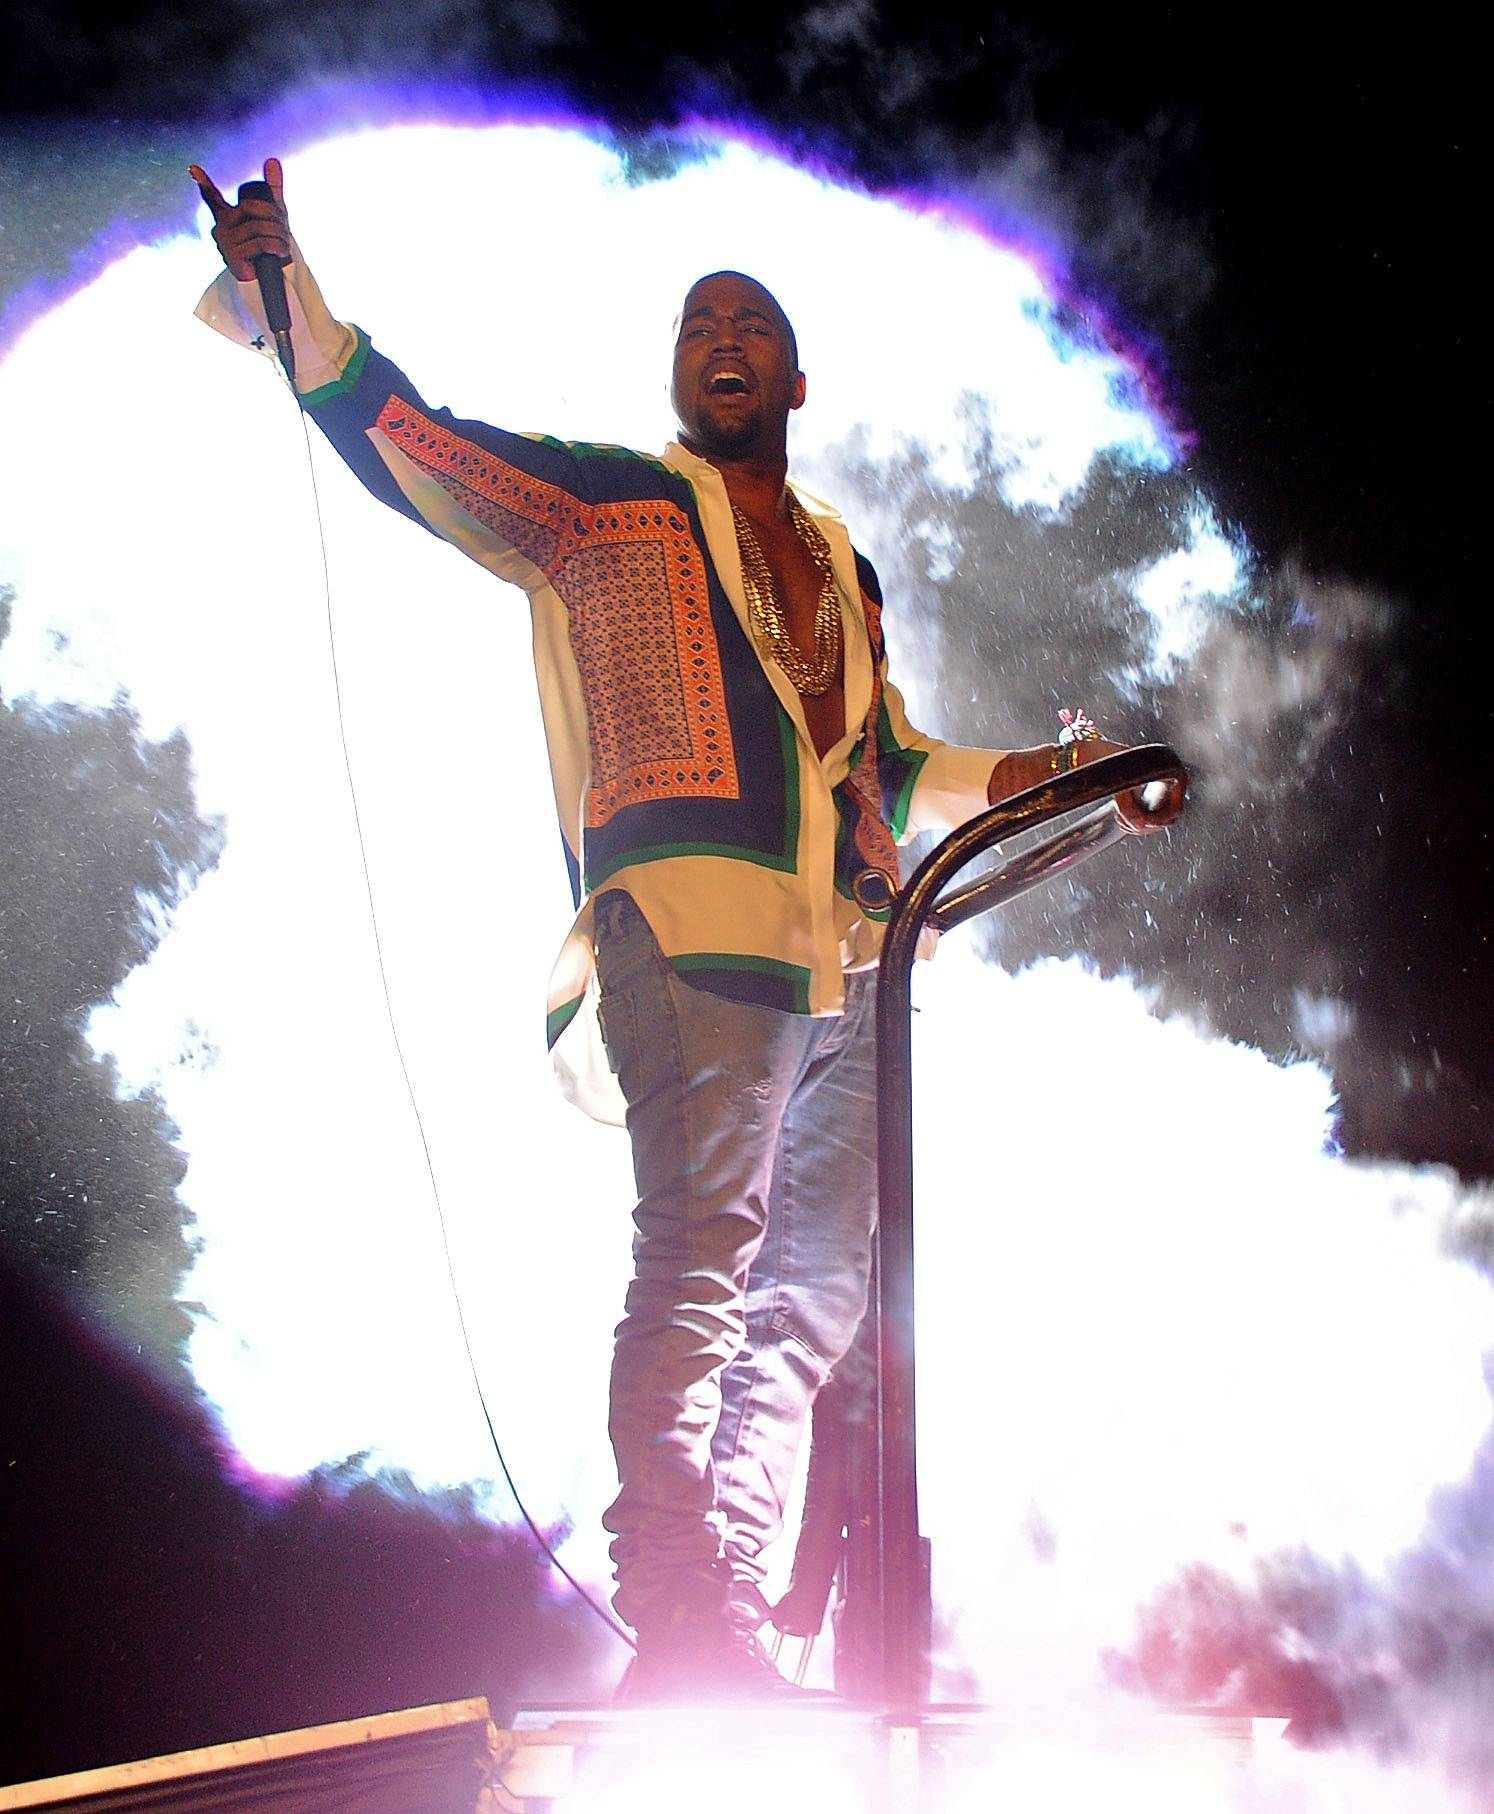 Kanye West\r\r - There are few fashion limits for this rapper-turned-designer. In April 2011, 'Yeezy was both praised and bashed when he rocked the Coachella Music Festival stage in a multicolored, silk long-sleeved shirt that went down the Celine Spring 2011 women's runway.\r\r(Photo: Kevin Winter/Getty Images)